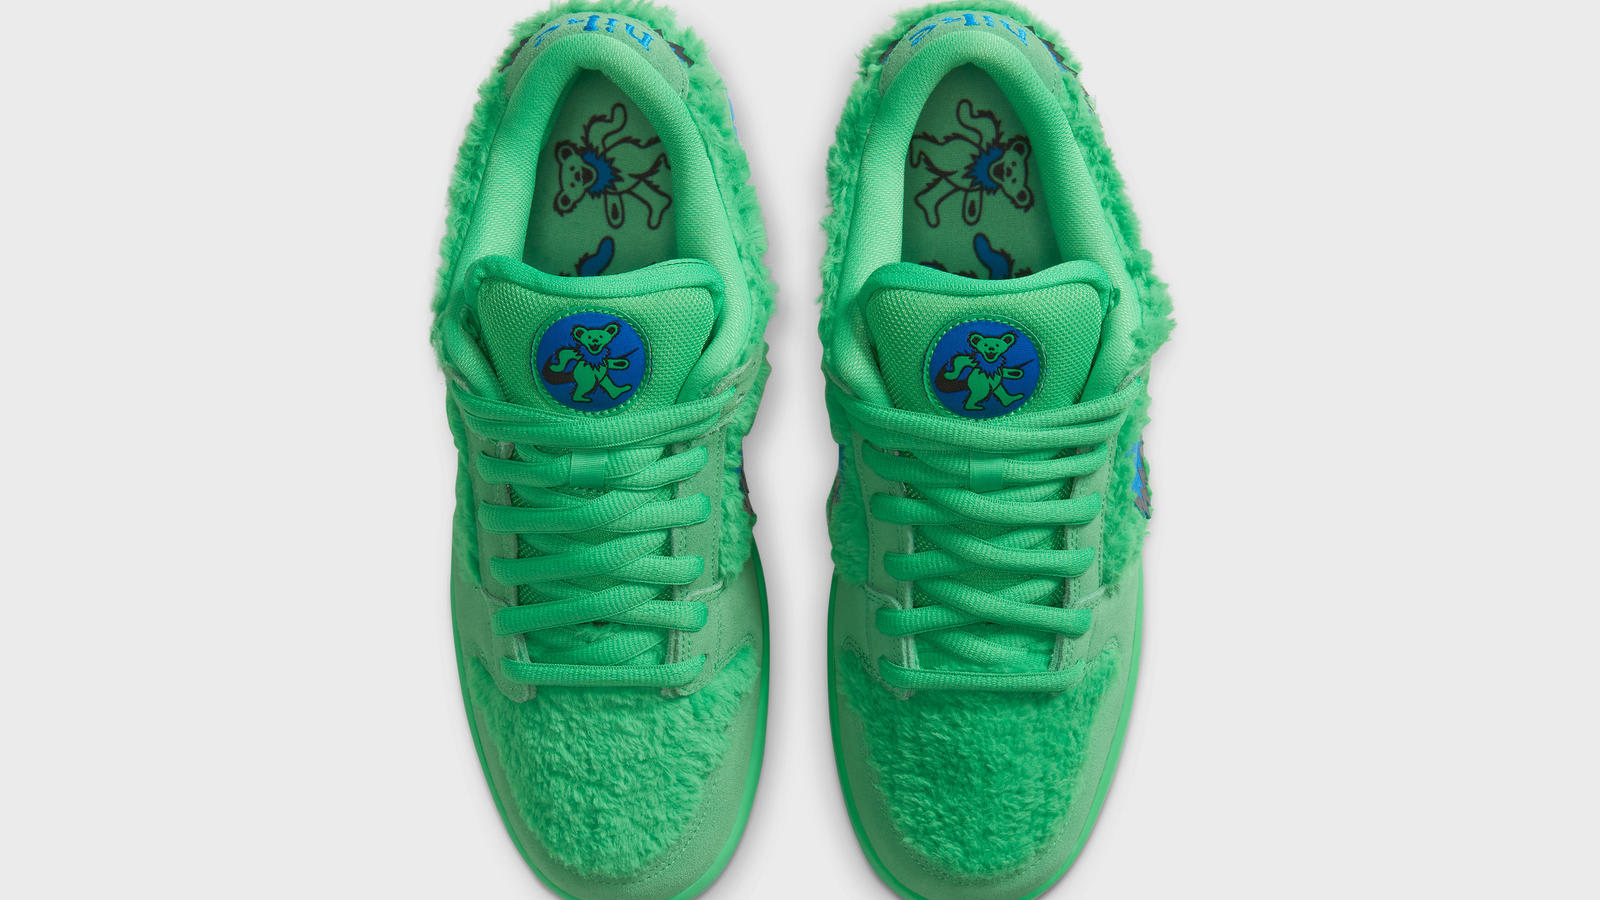 Grateful Dead x Nike SB Dunk Low 'Green' (Top)